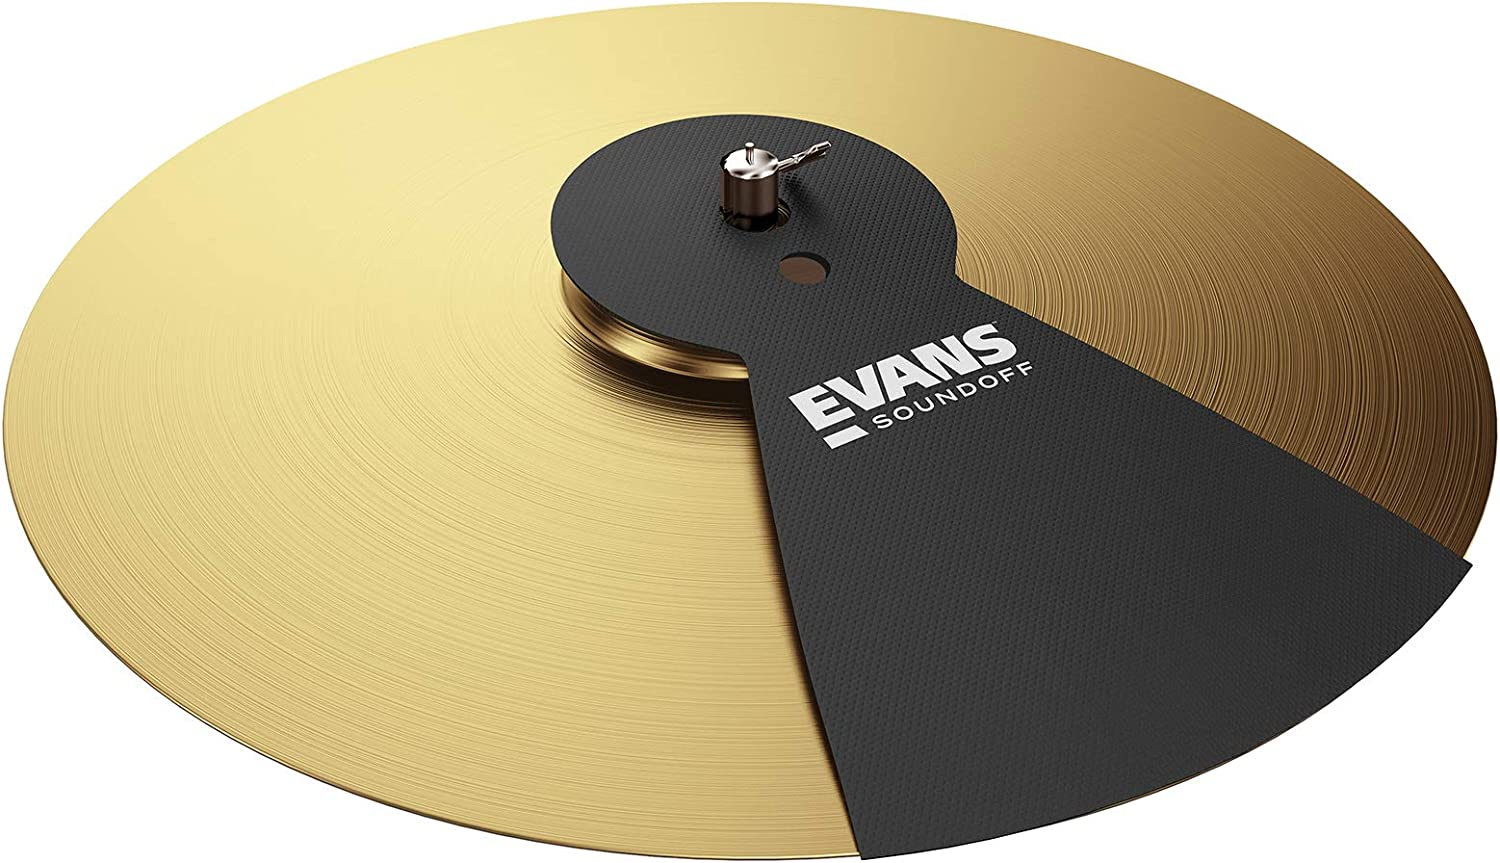 SoundOff by Evans Cymbal Mute